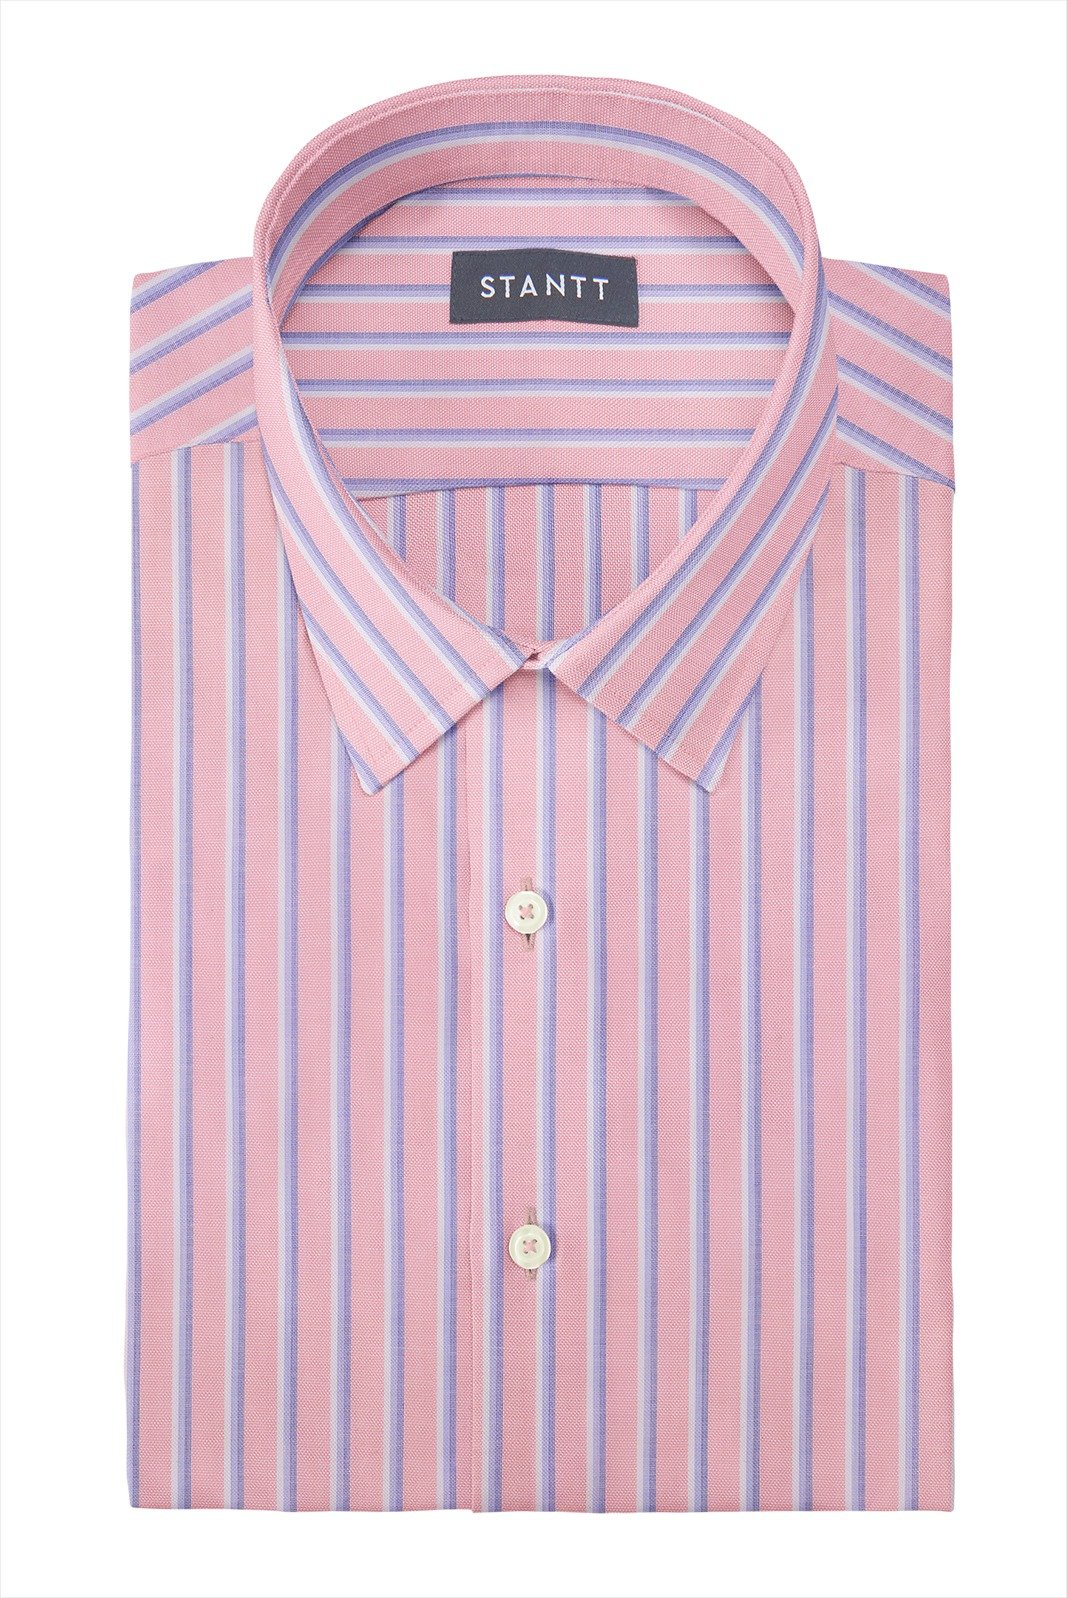 Bold Pink Oxford Stripe: Semi-Spread Collar, French Cuff